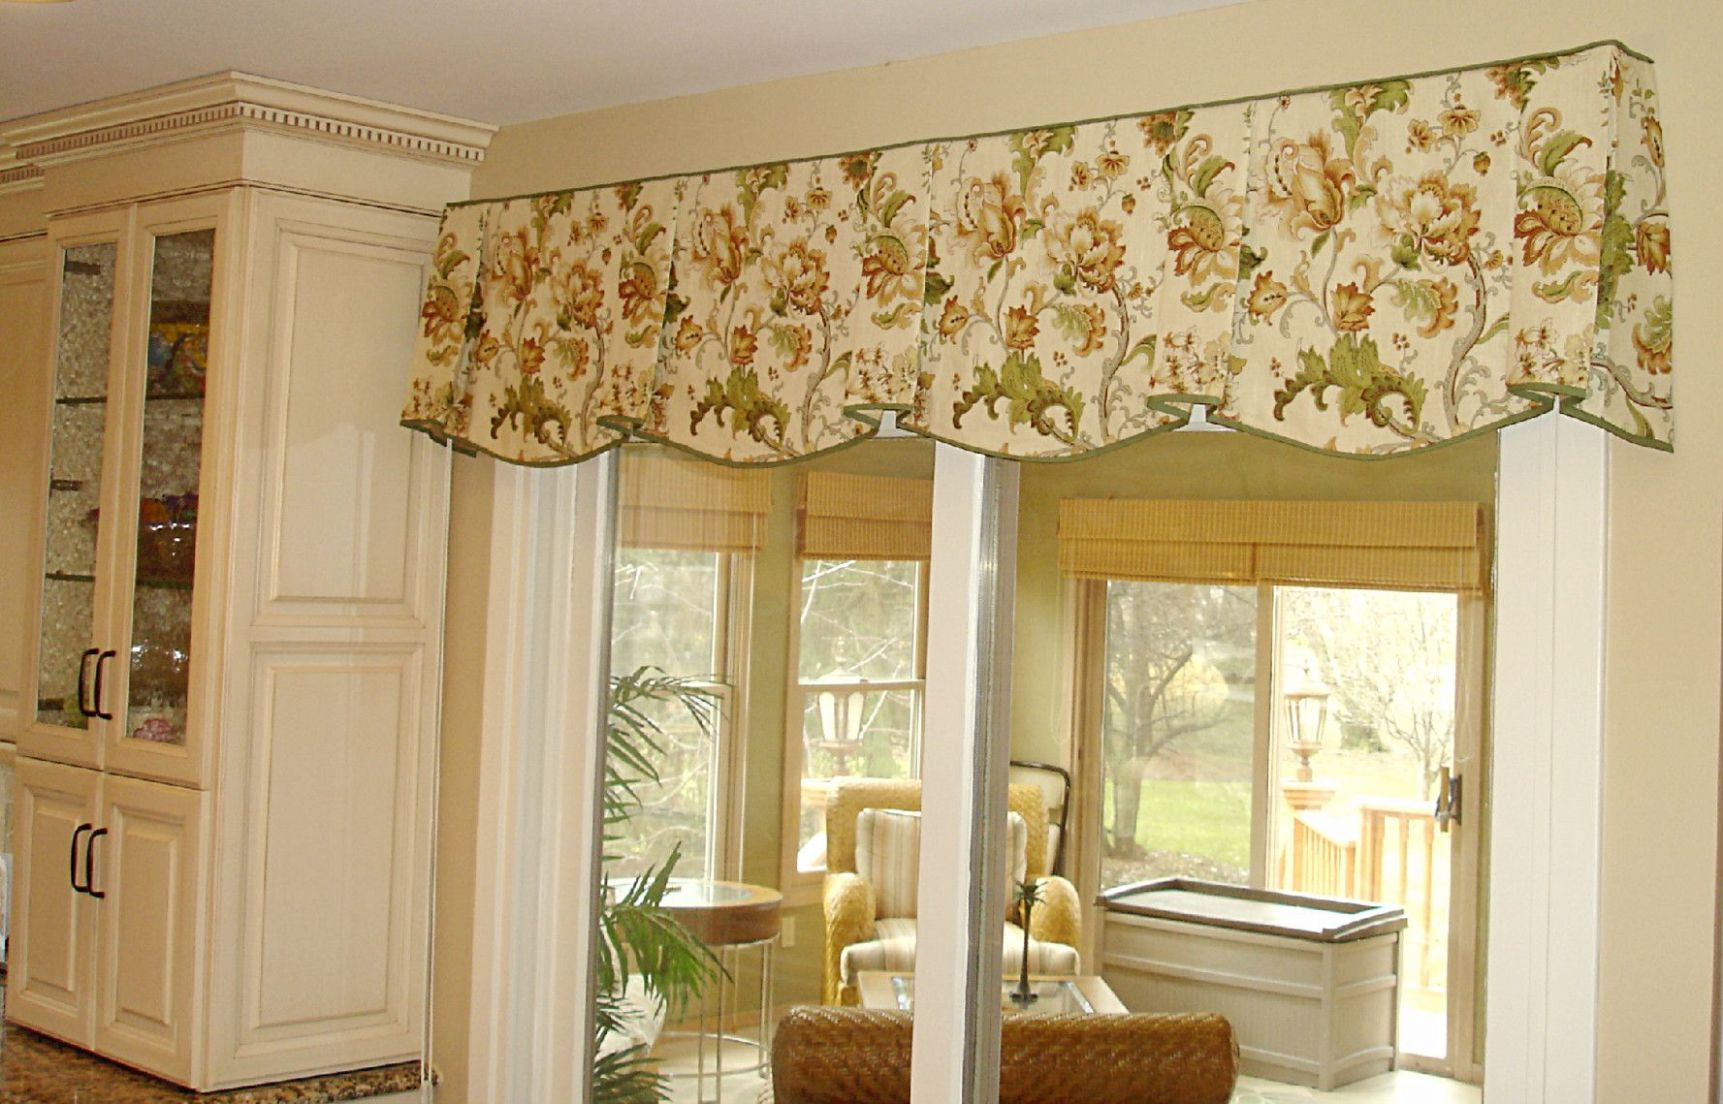 living room valance ideas | Country kitchen curtains